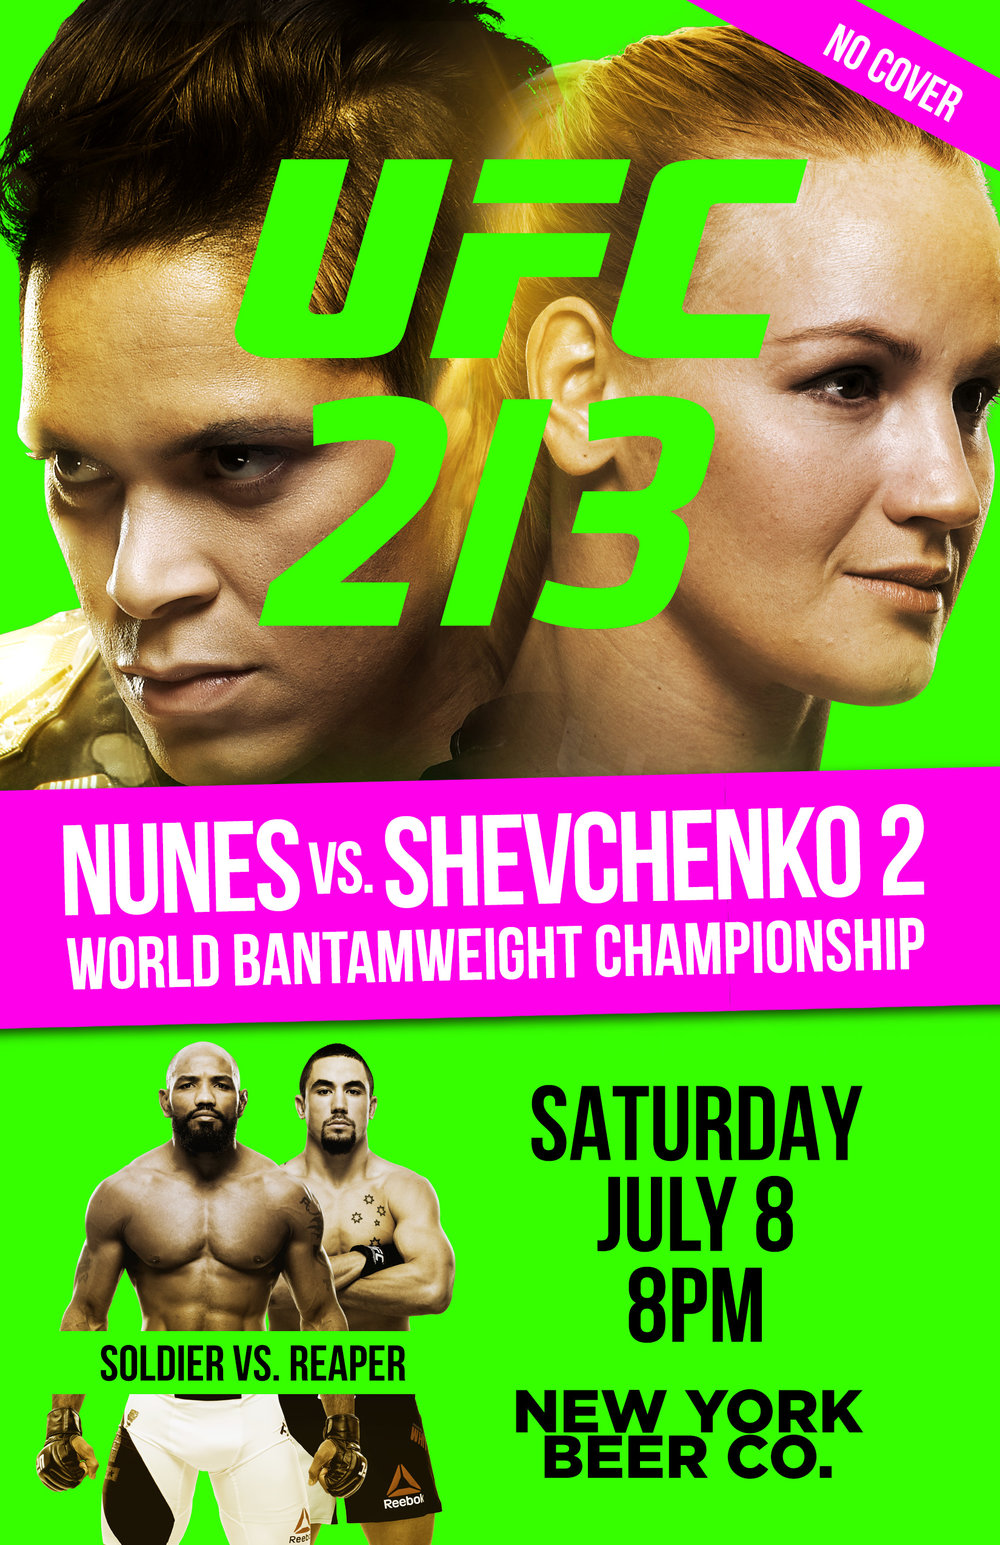 watch ufc 213 in nyc